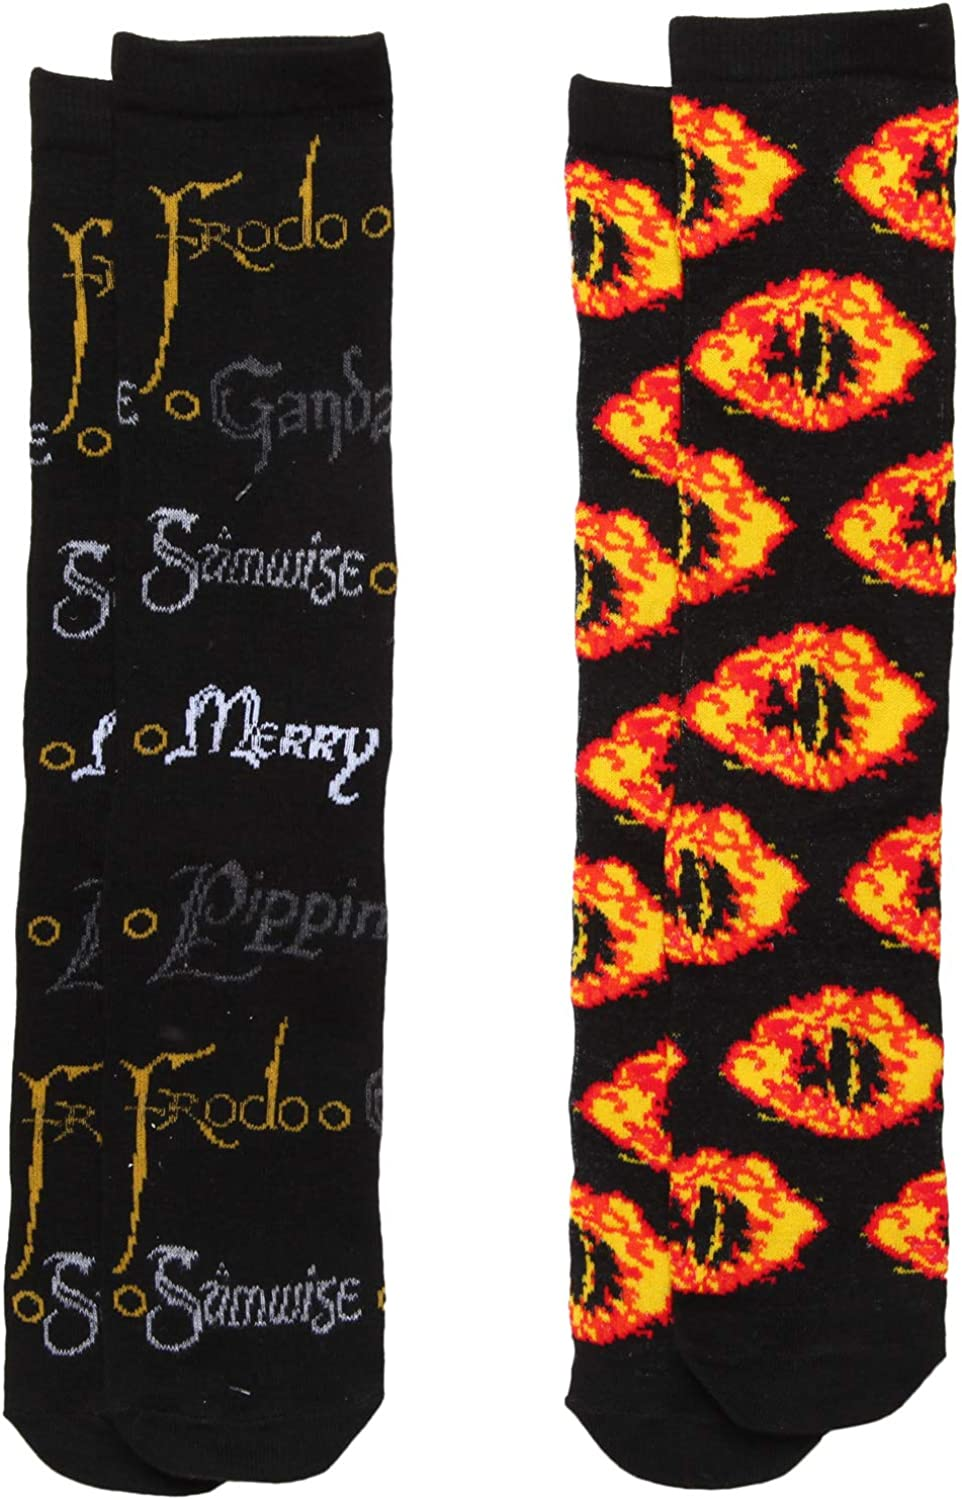 Lord of The Rings inspired socks